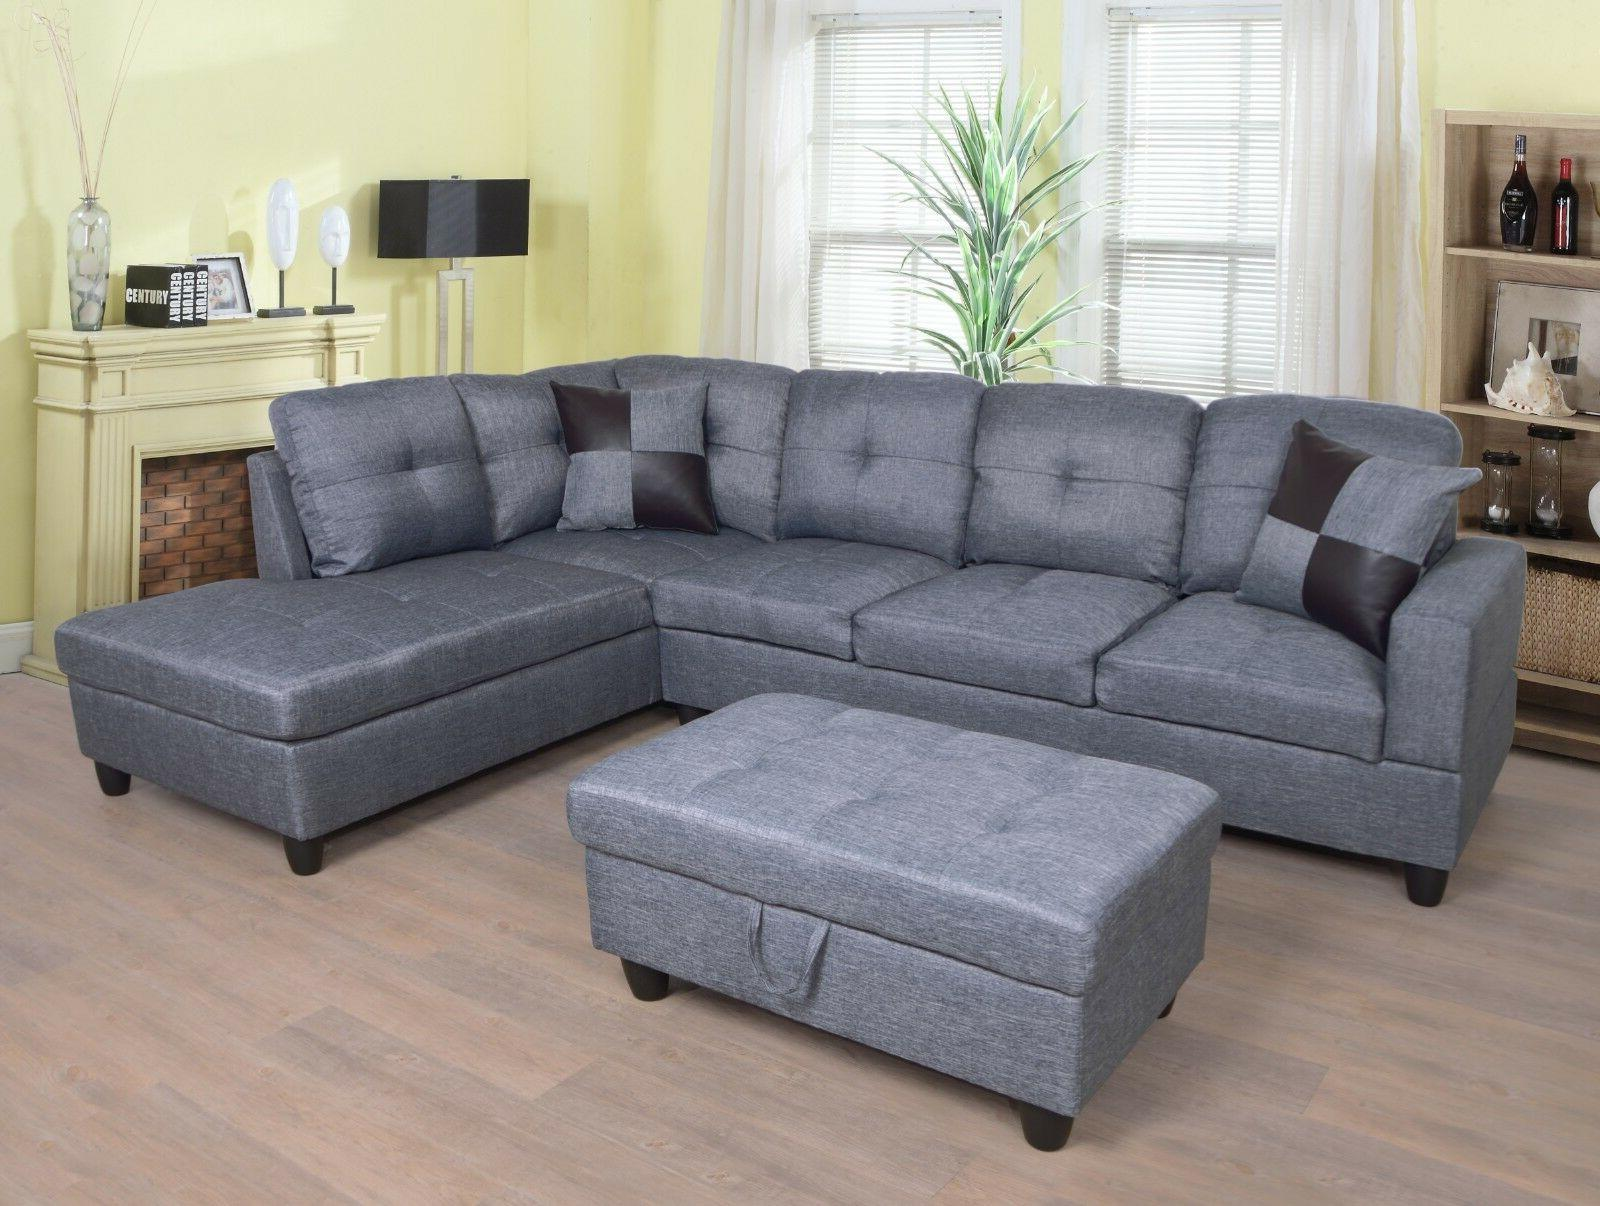 sectional sofa set with ottoman gray microfiber